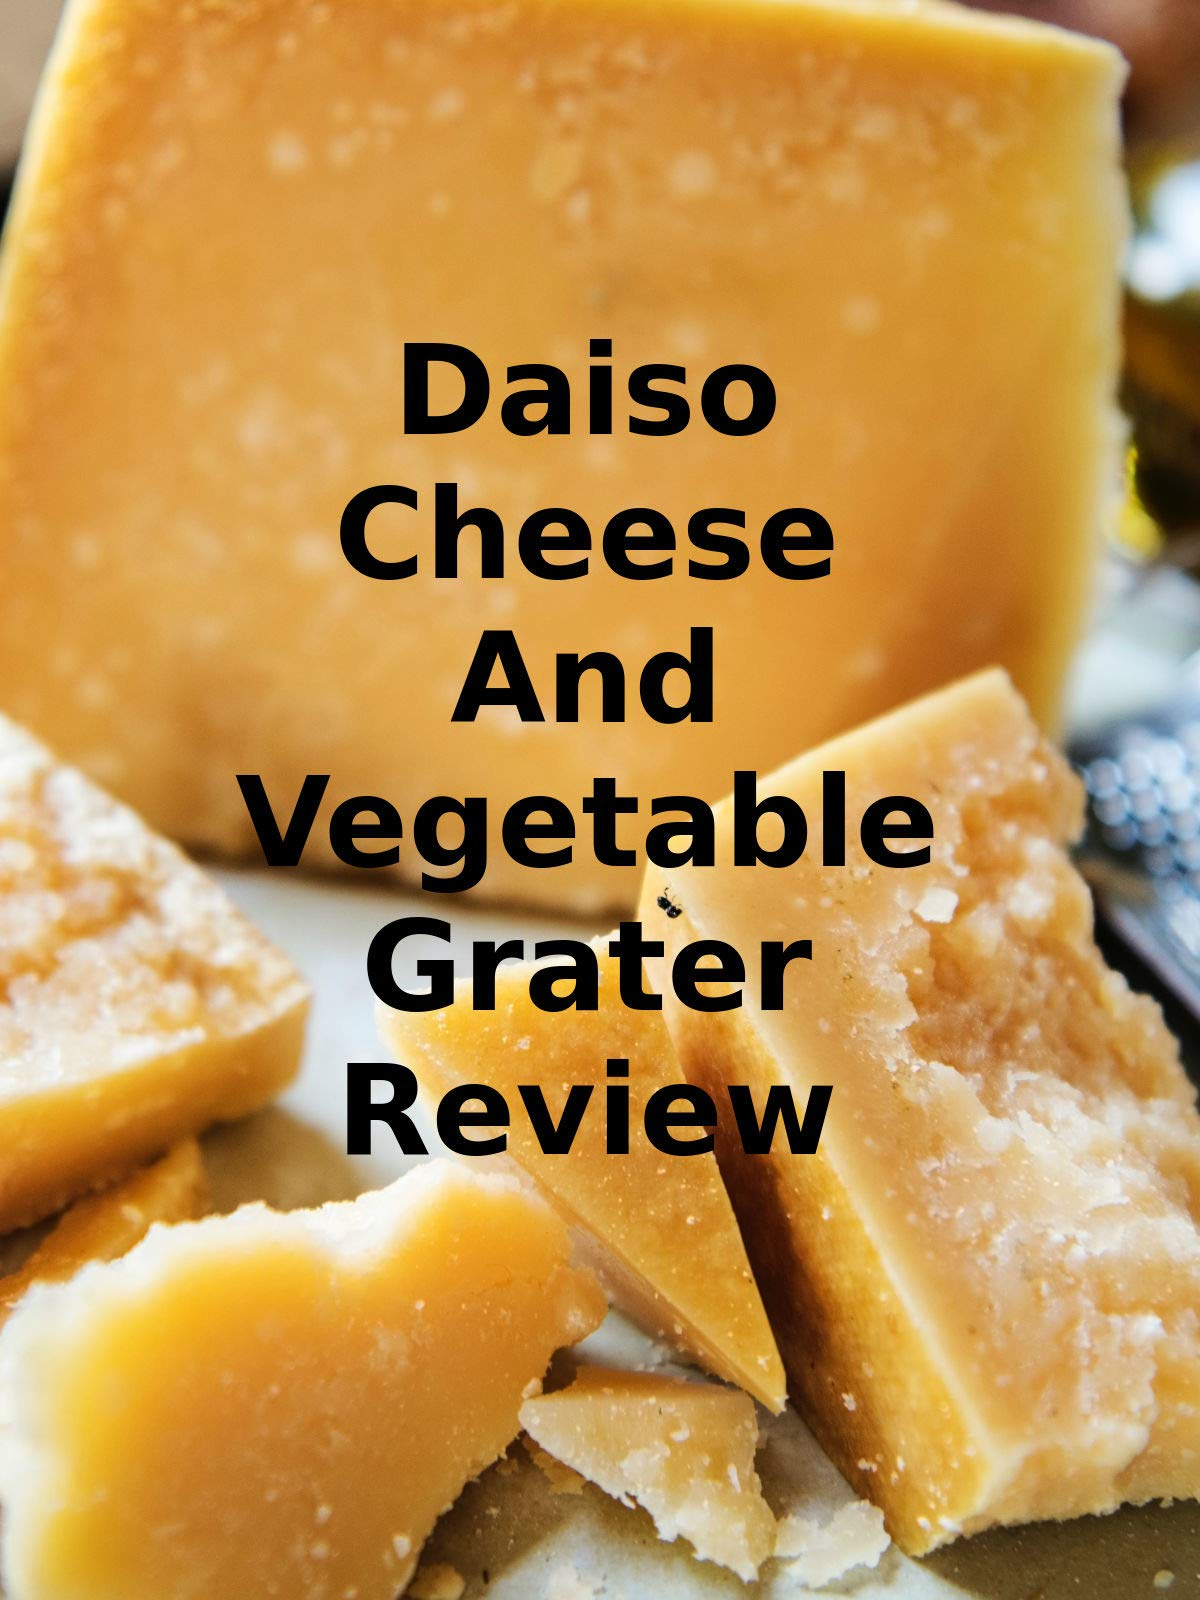 Review: Daiso Cheese And Vegetable Grater Review on Amazon Prime Video UK